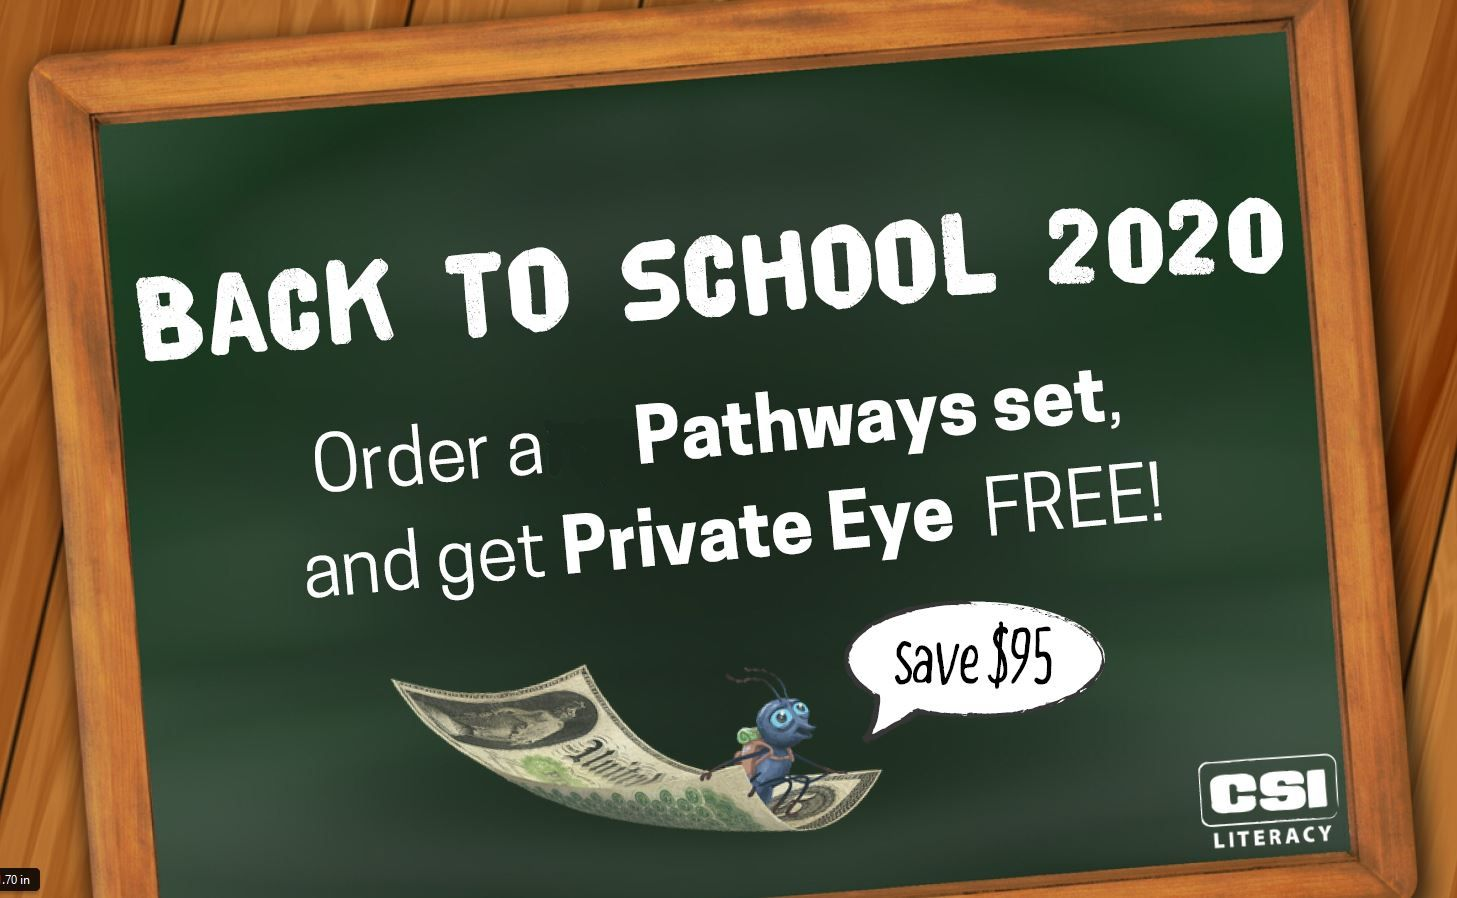 back to school pathways